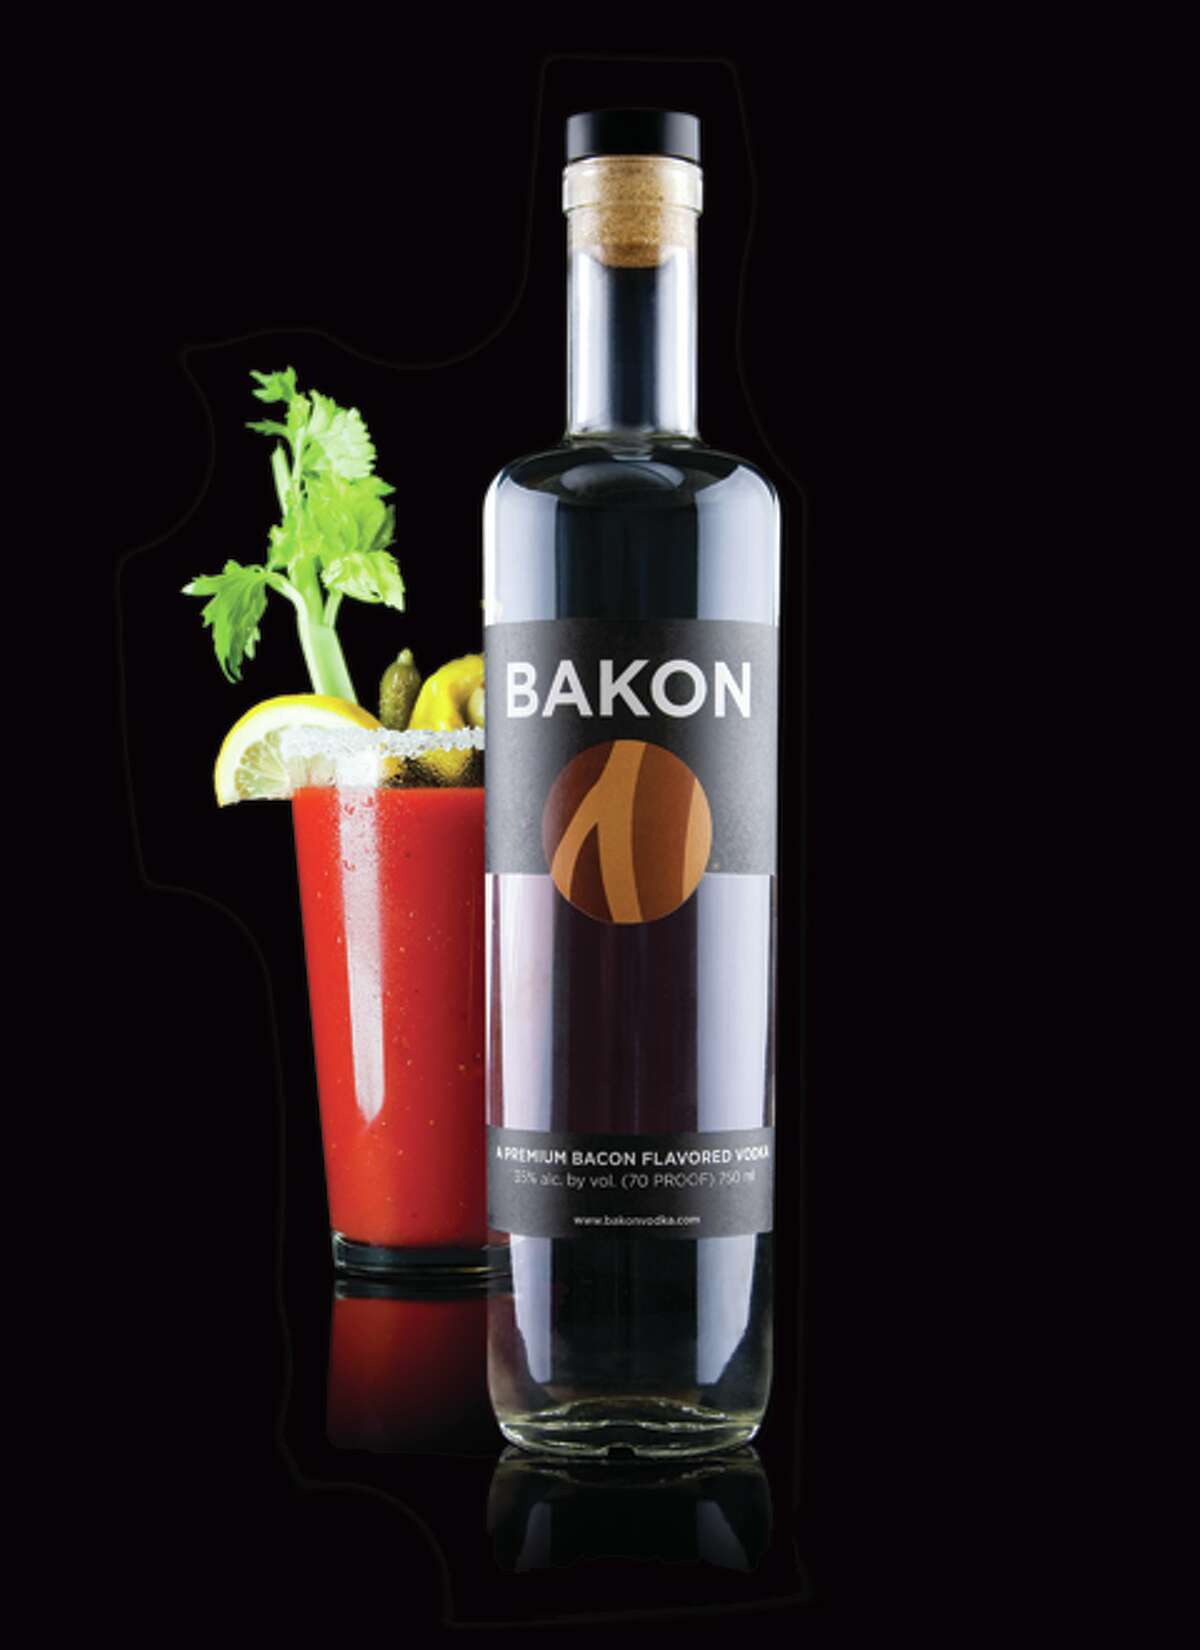 Bacon-flavored vodka (Bakon Vodka)